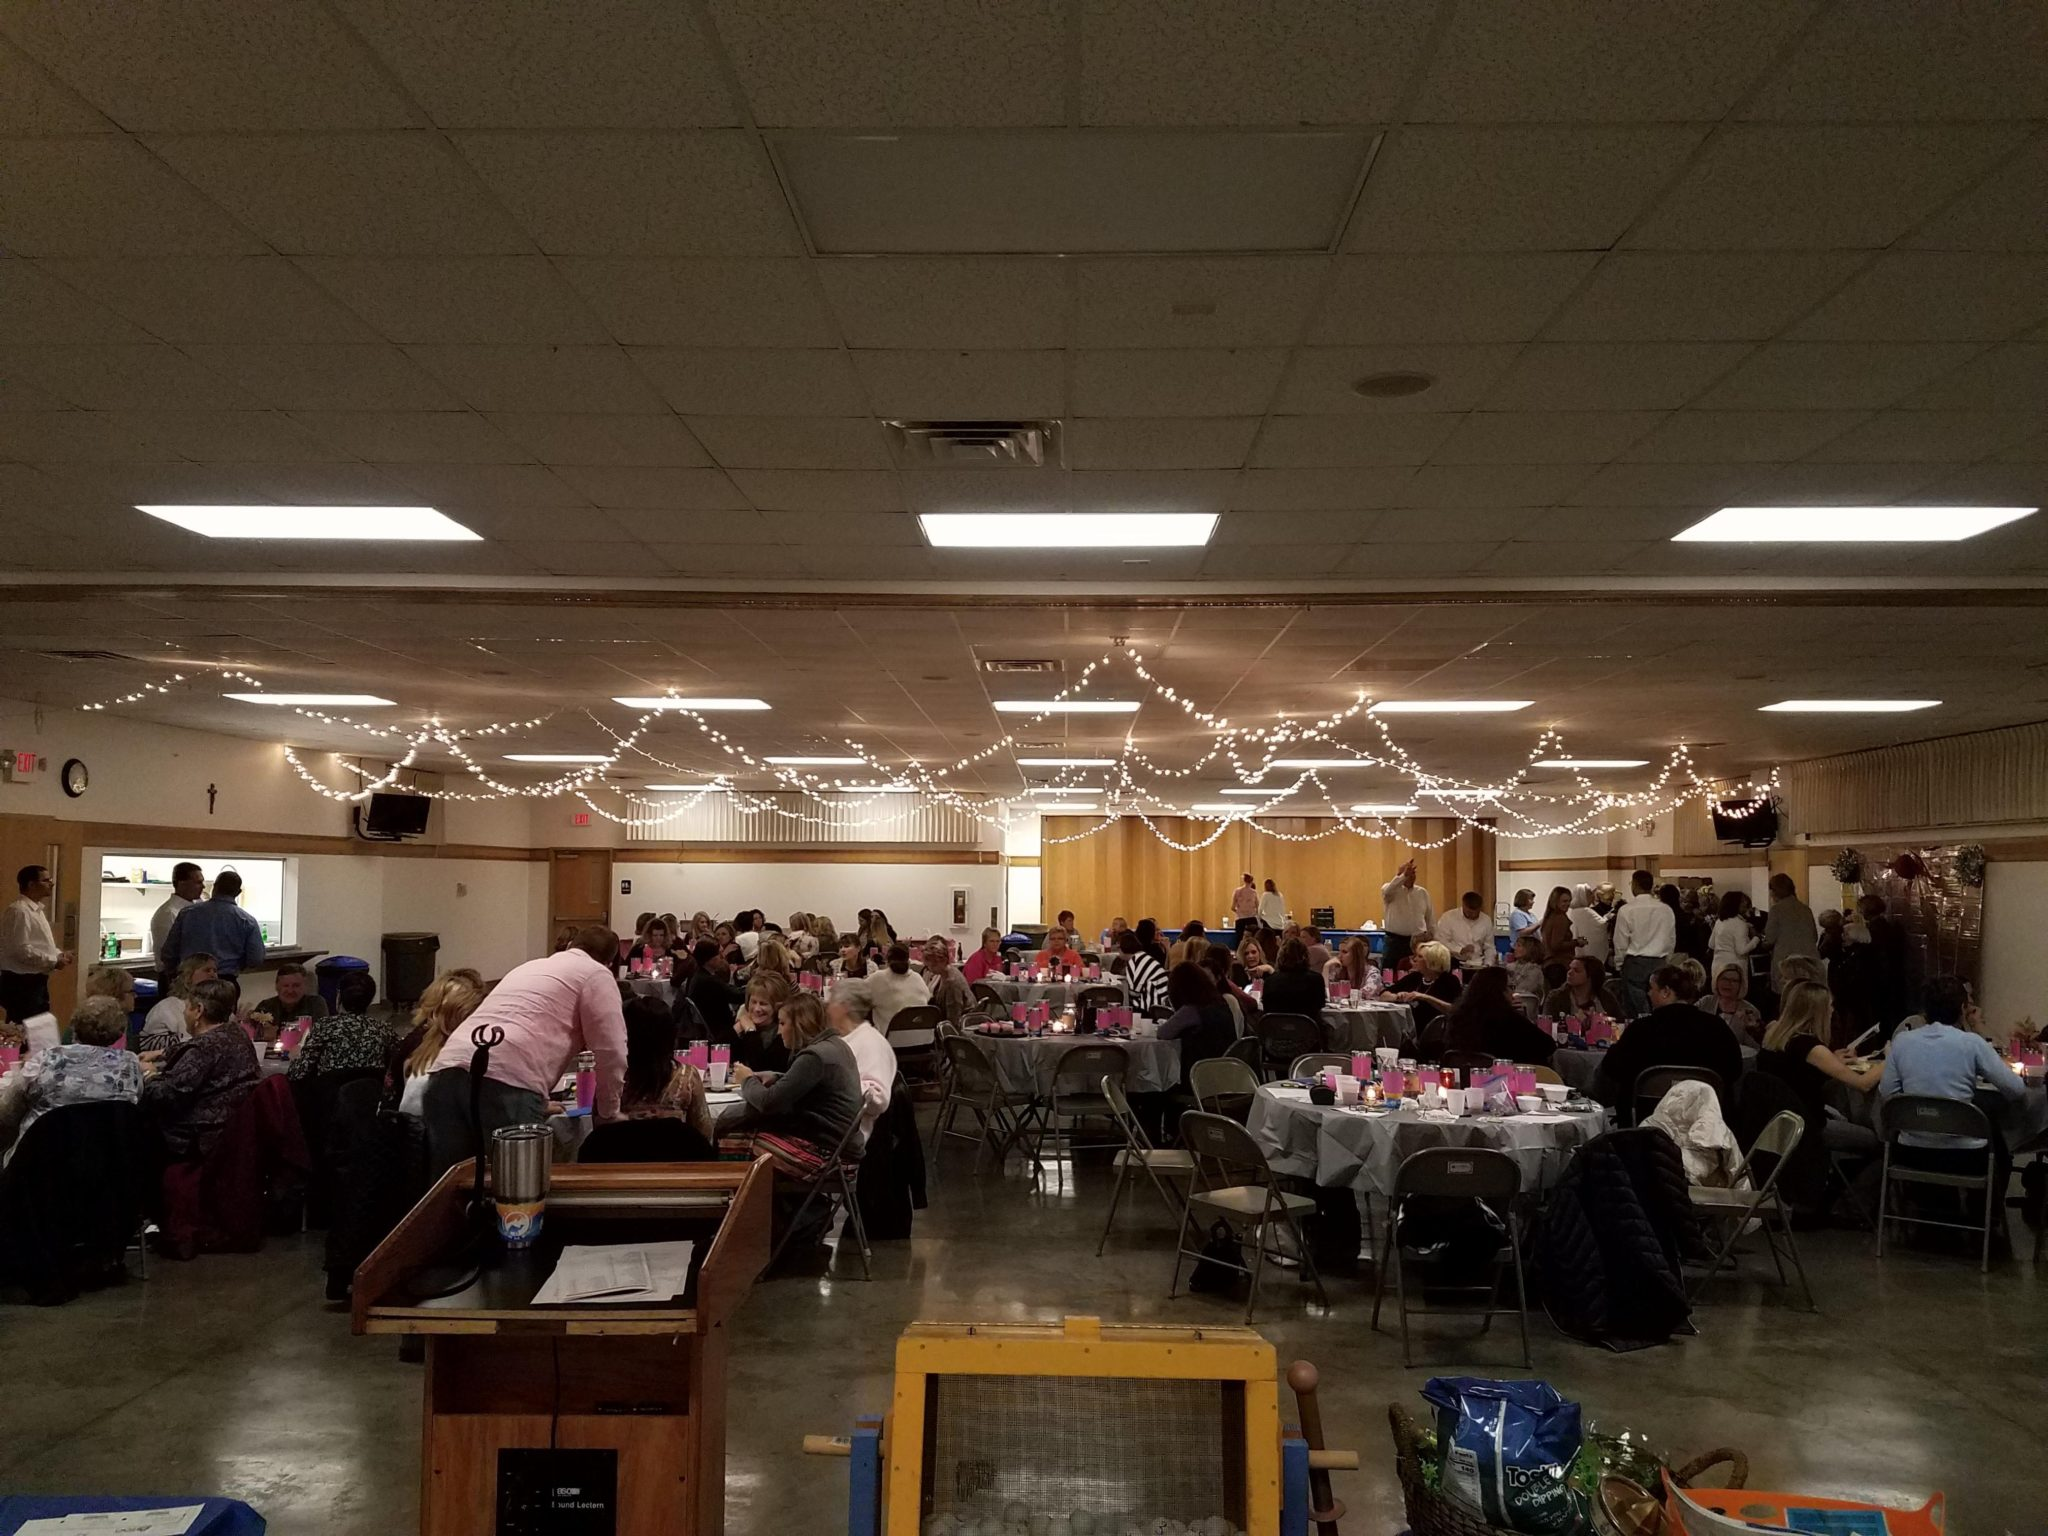 A large gathering with people sitting at tables and string lights hanging from the ceiling